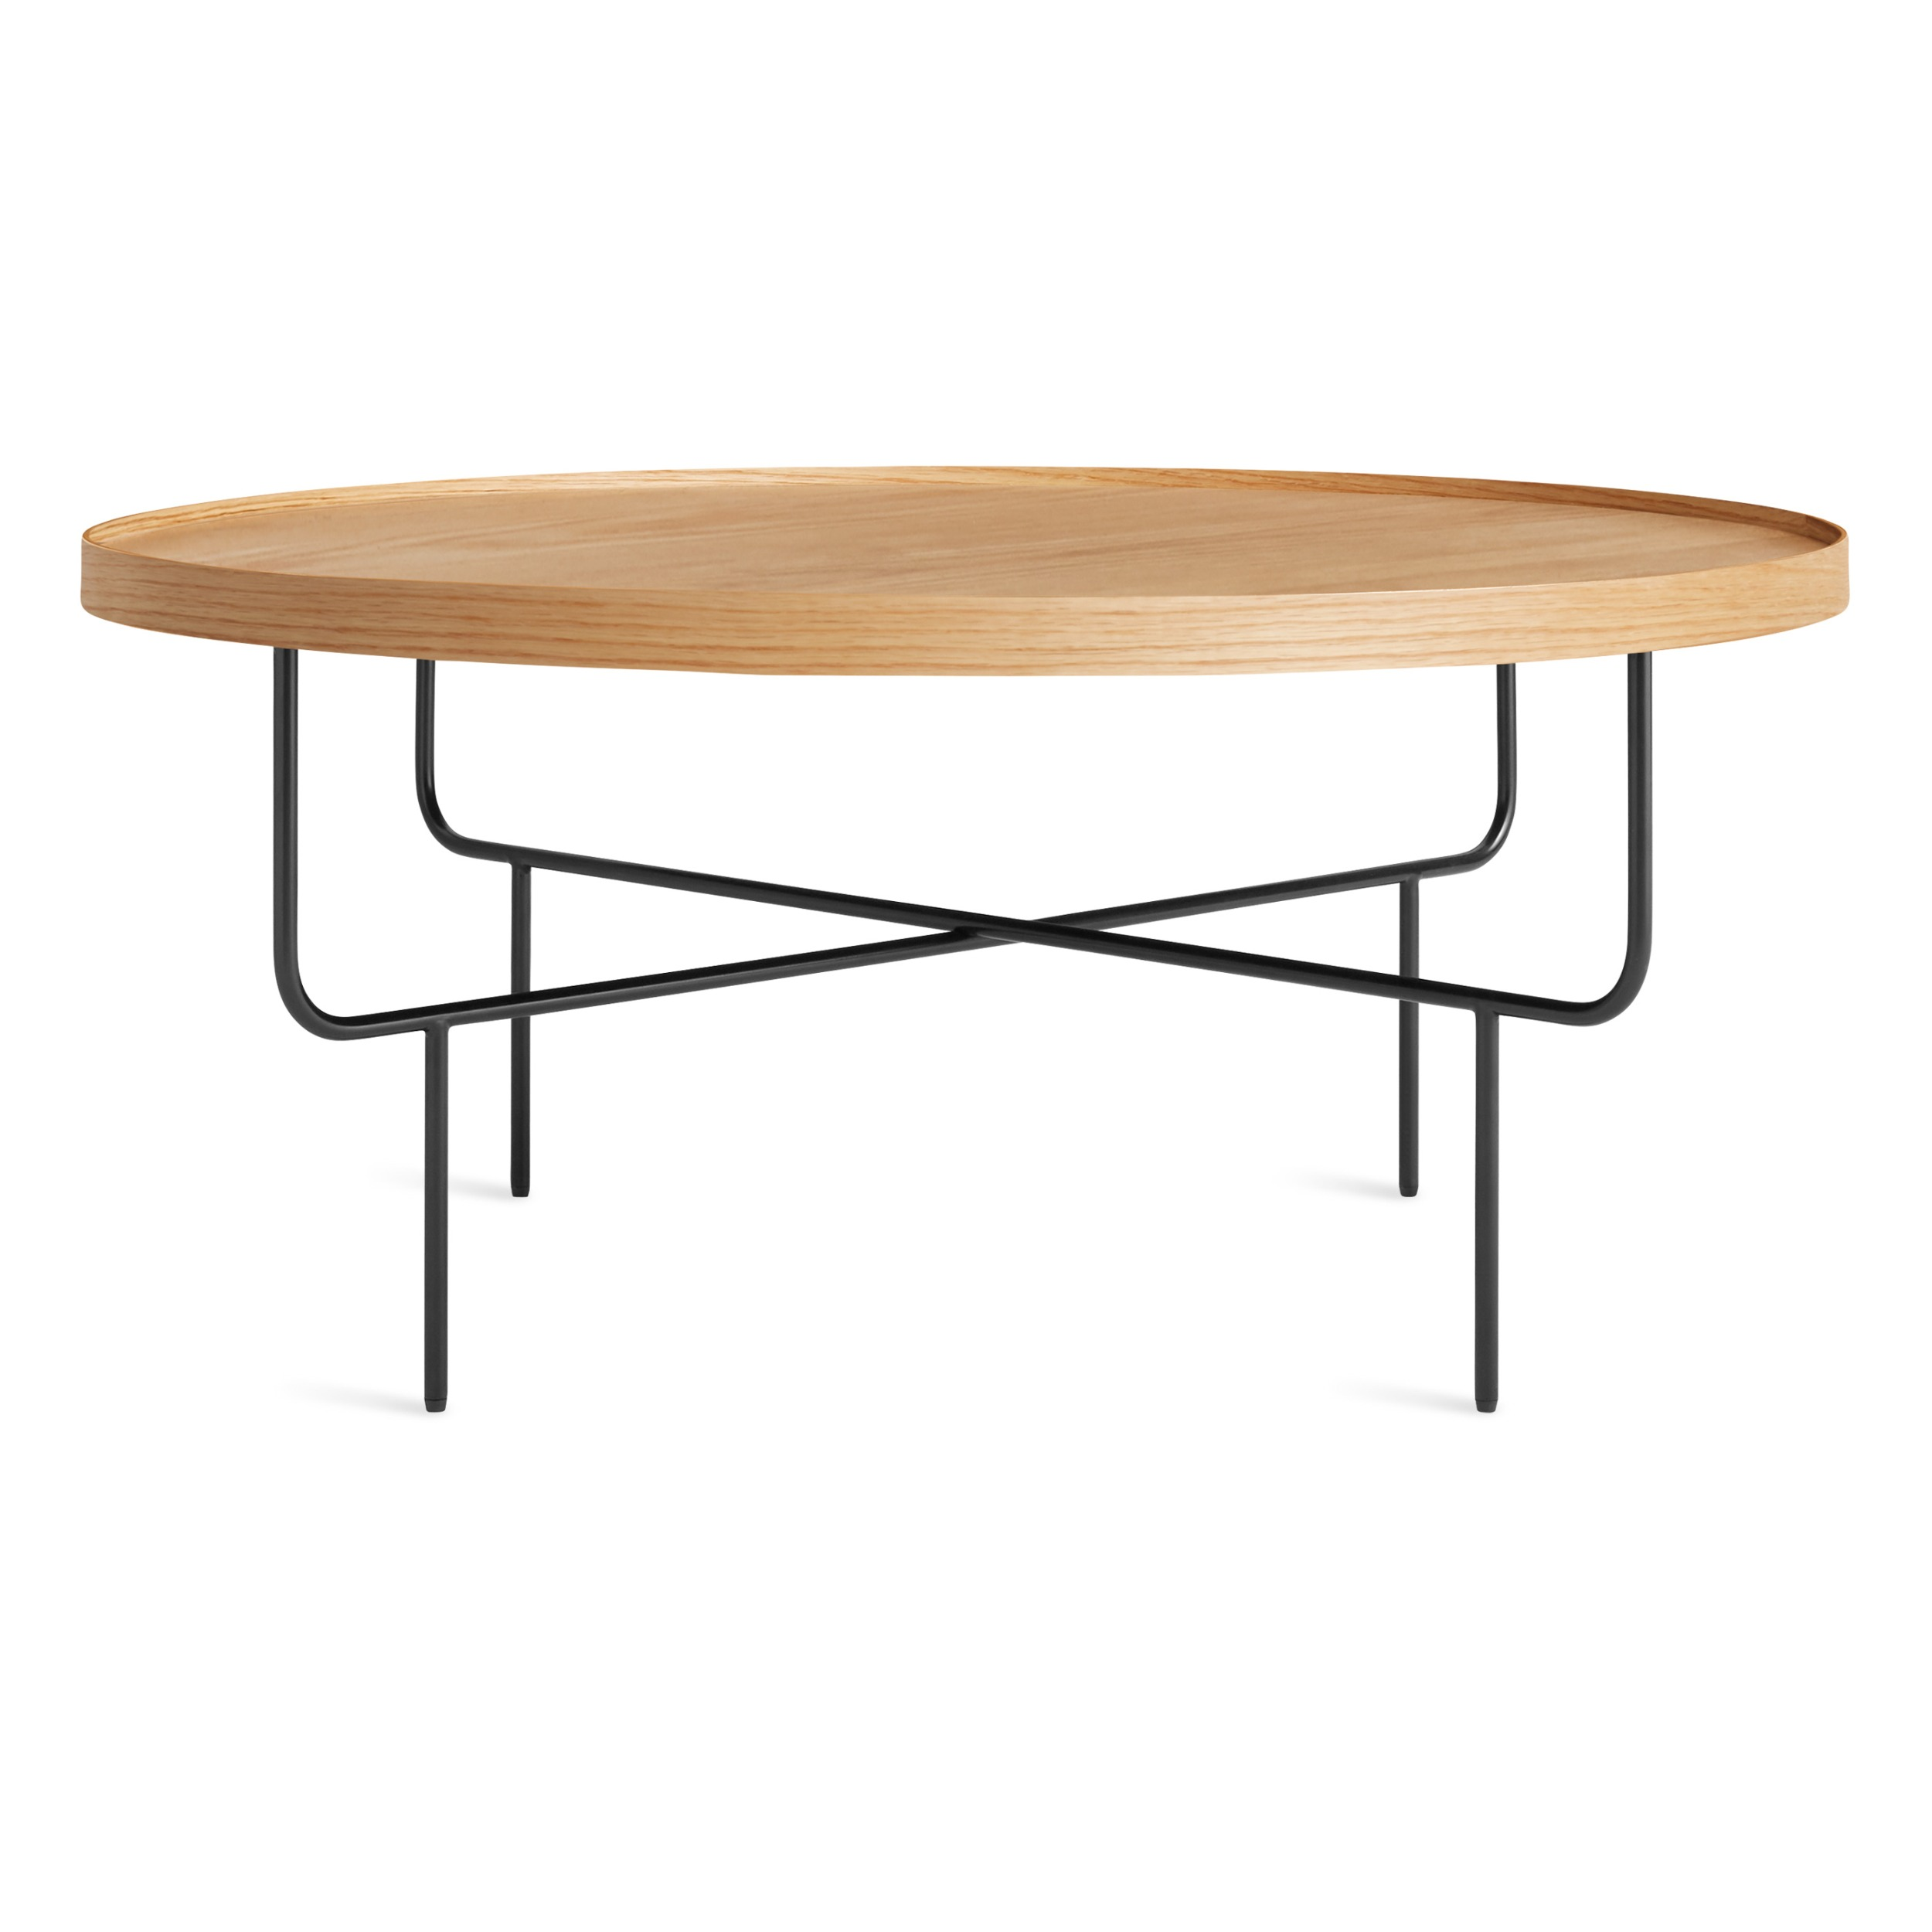 Roundhouse Coffee Table In 2021 White Oak Coffee Table Coffee Table Round Coffee Table Modern [ 2500 x 2500 Pixel ]